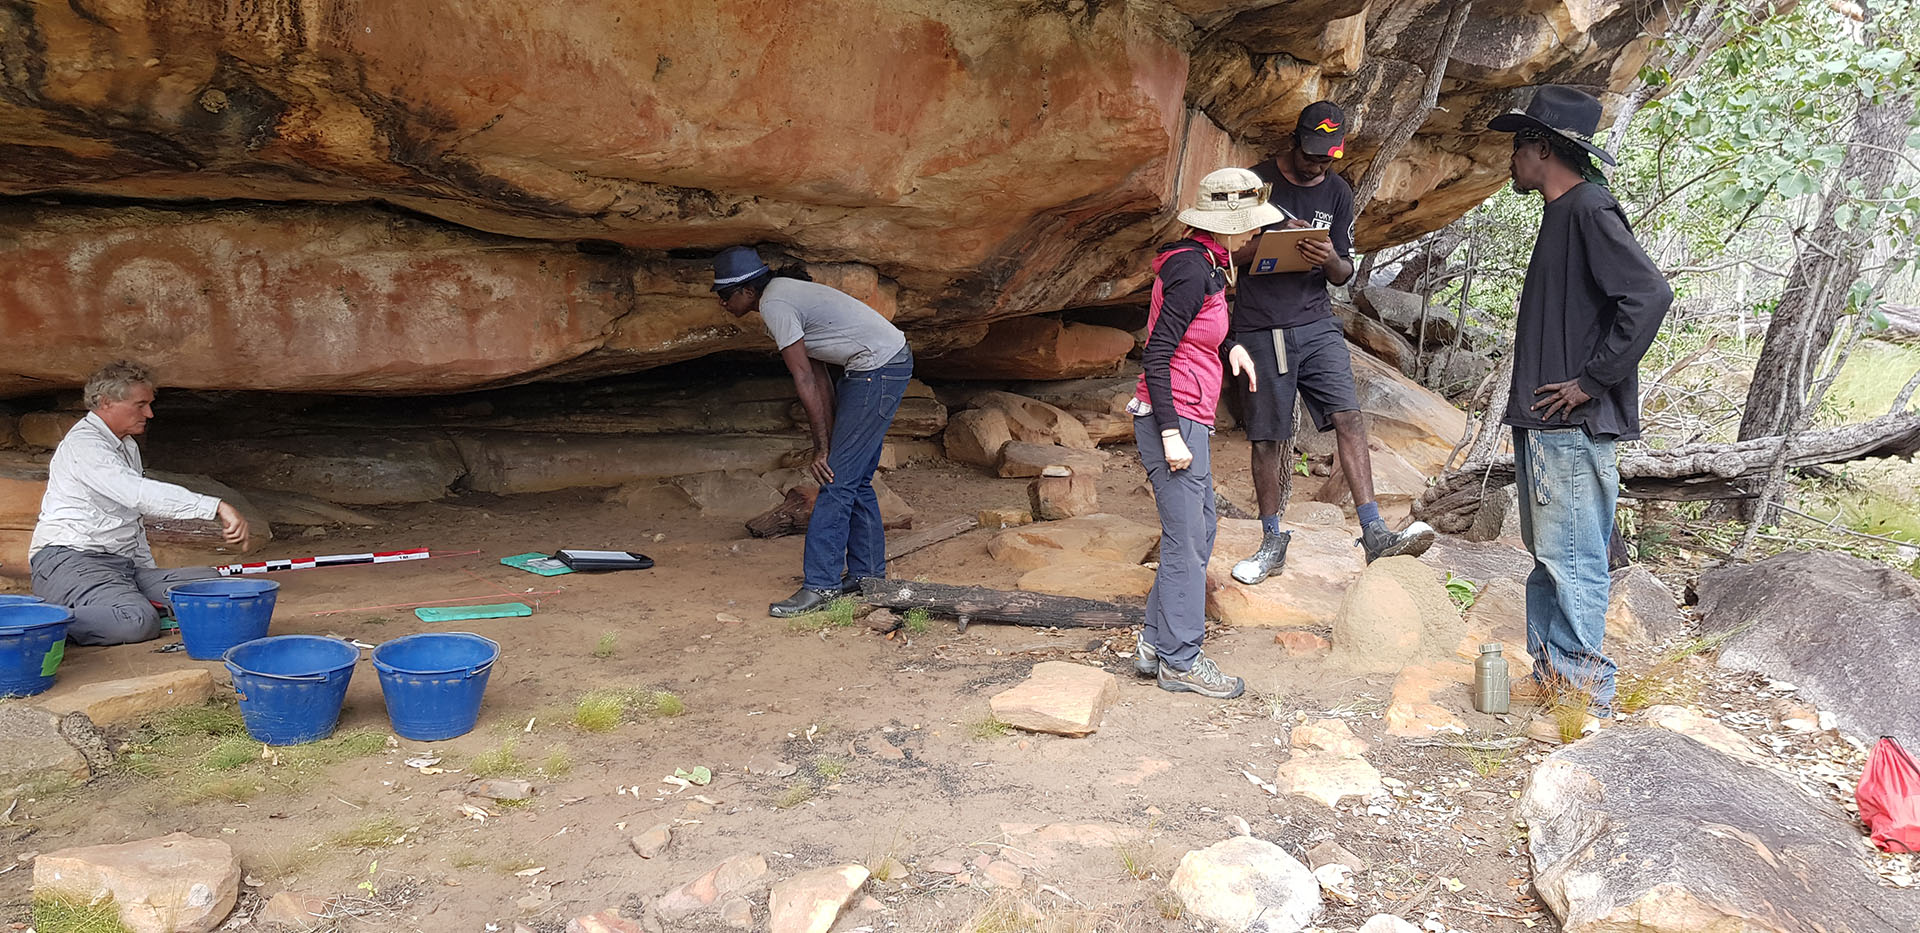 Aboriginal artwork in the Kimberley could be among oldest in the world, scientists say. ABC 7.30 Report Nov 2015